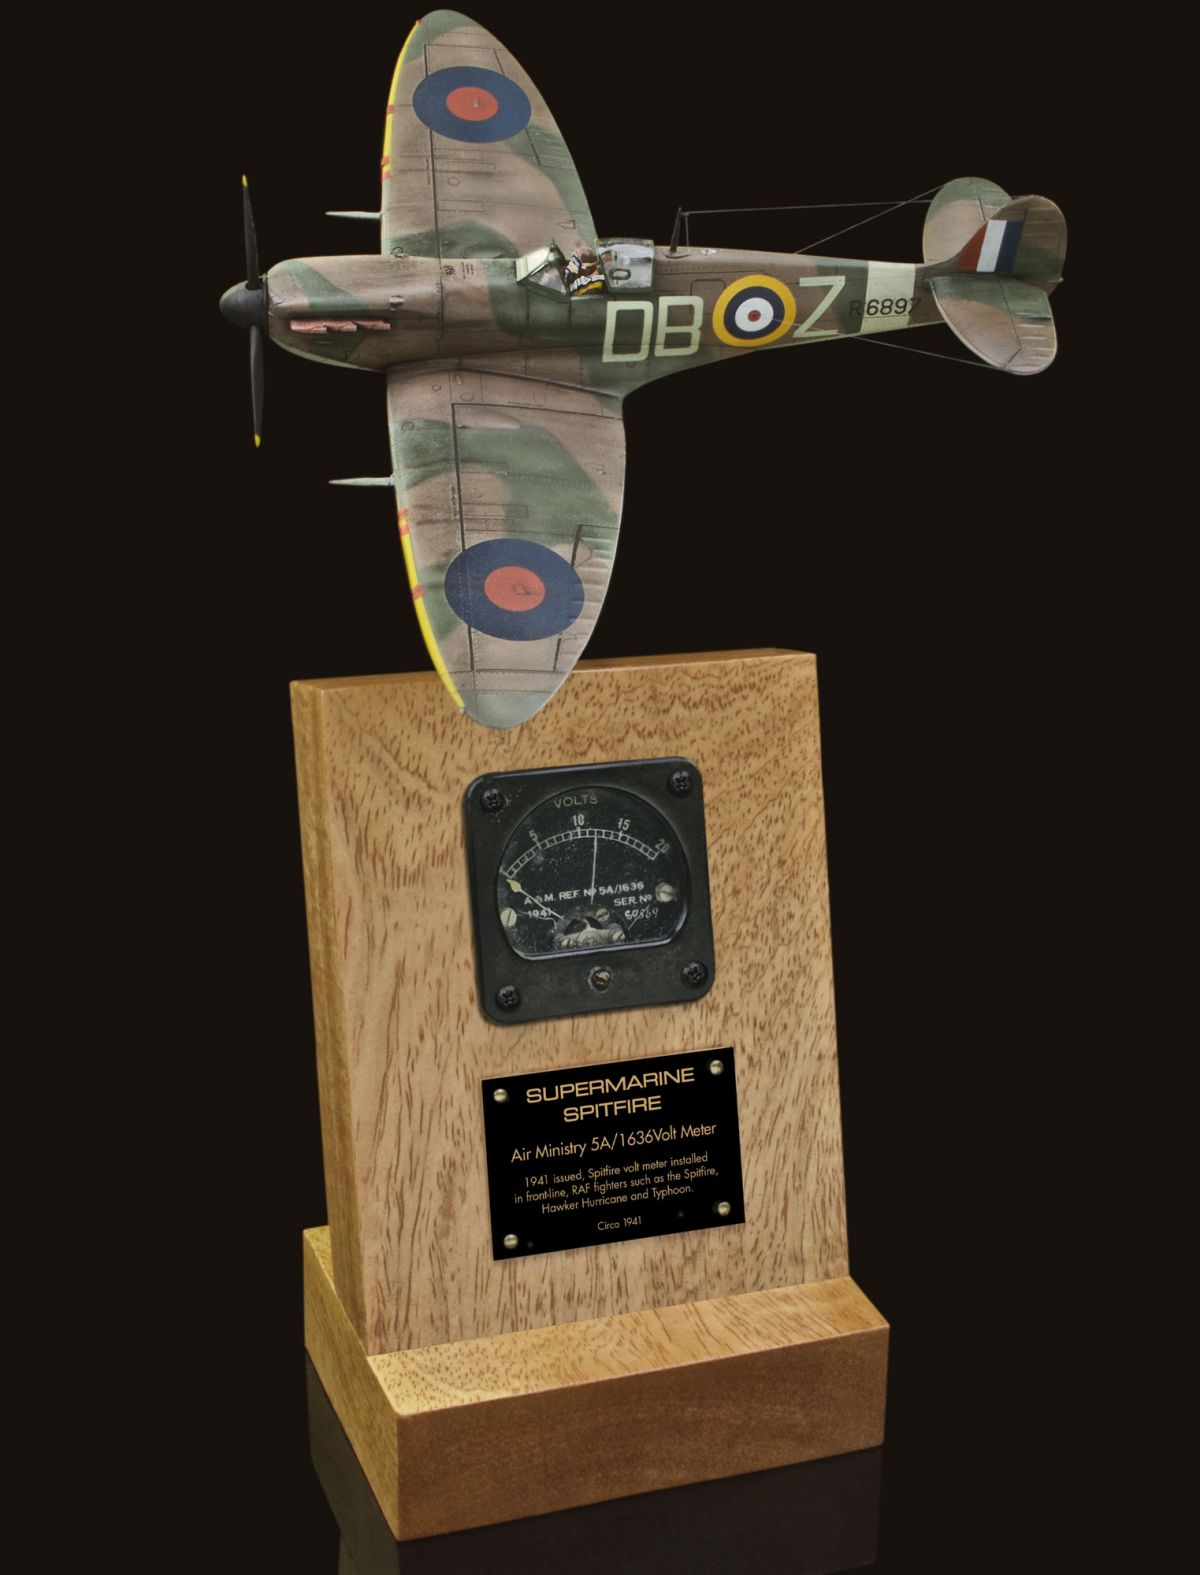 SUPERMARINE SPITFIRE Mk IA 5A/1636 AIR MINISTRY & CROWN 1939 ISSUED VOLT METER